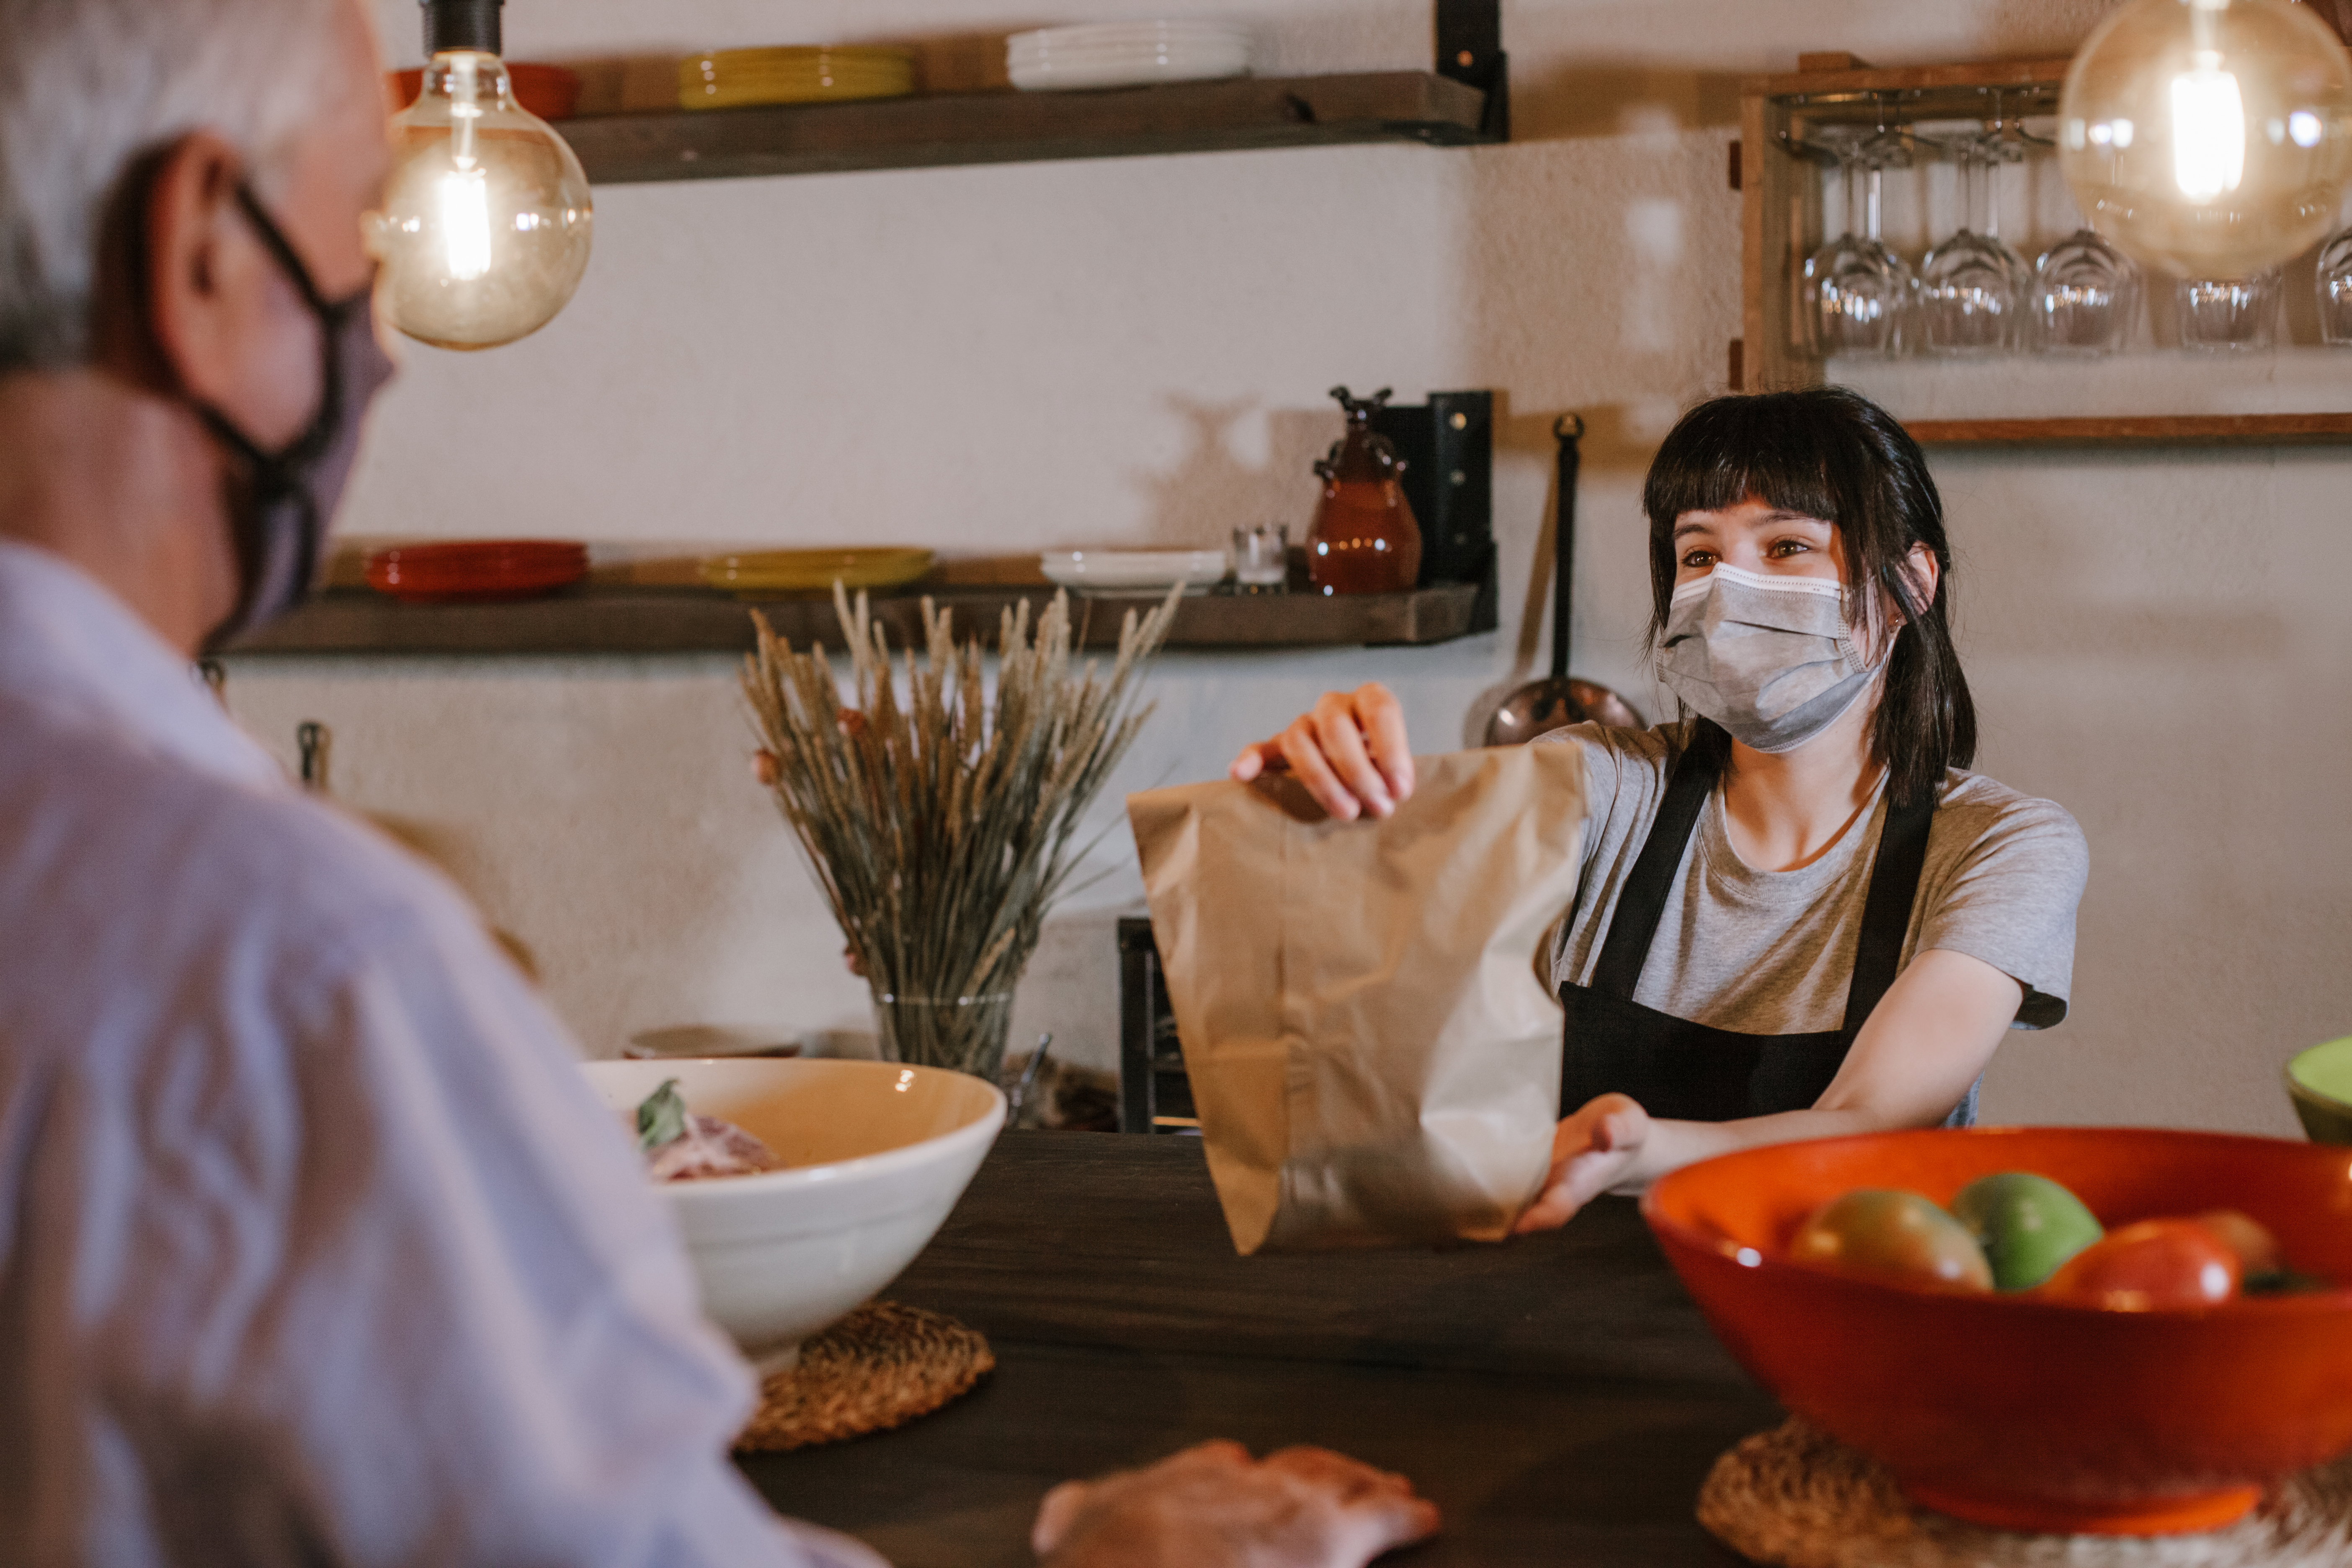 A masked restaurant workers passes a bag of food across a counter to a masked diner